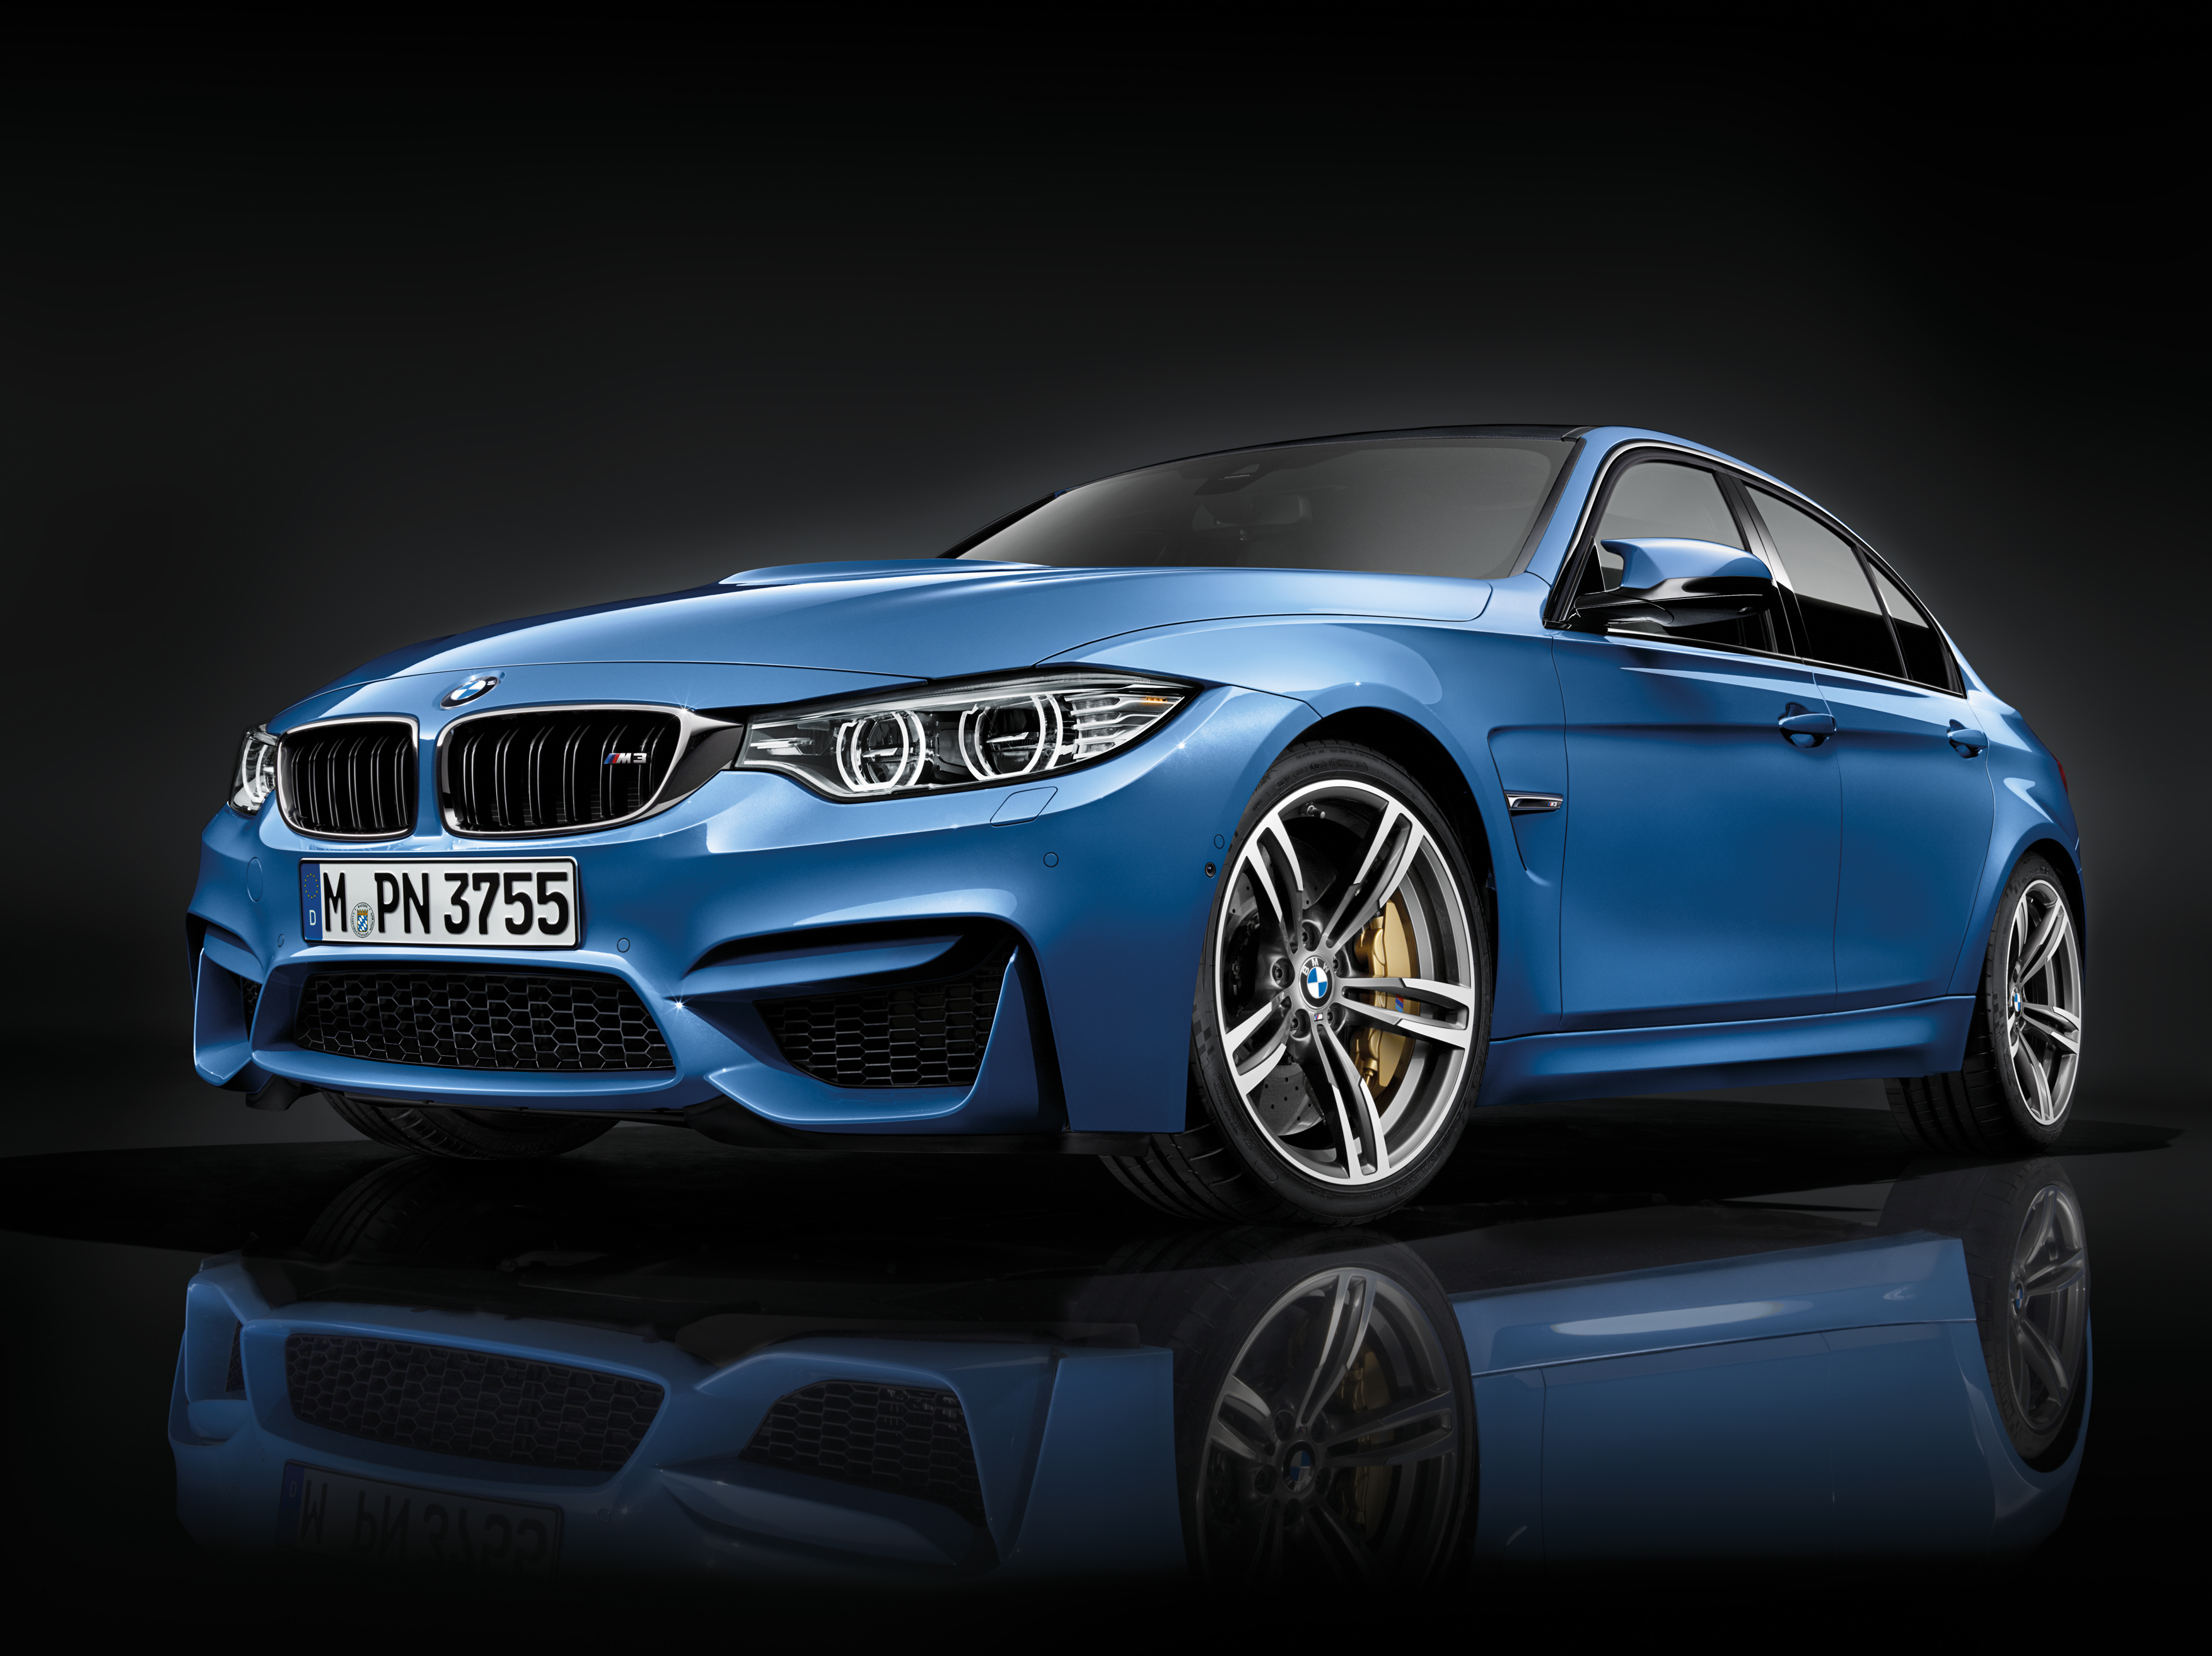 2015 BMW M3 Sedan Stills - (4) - SMADEMEDIA.COM Galleria